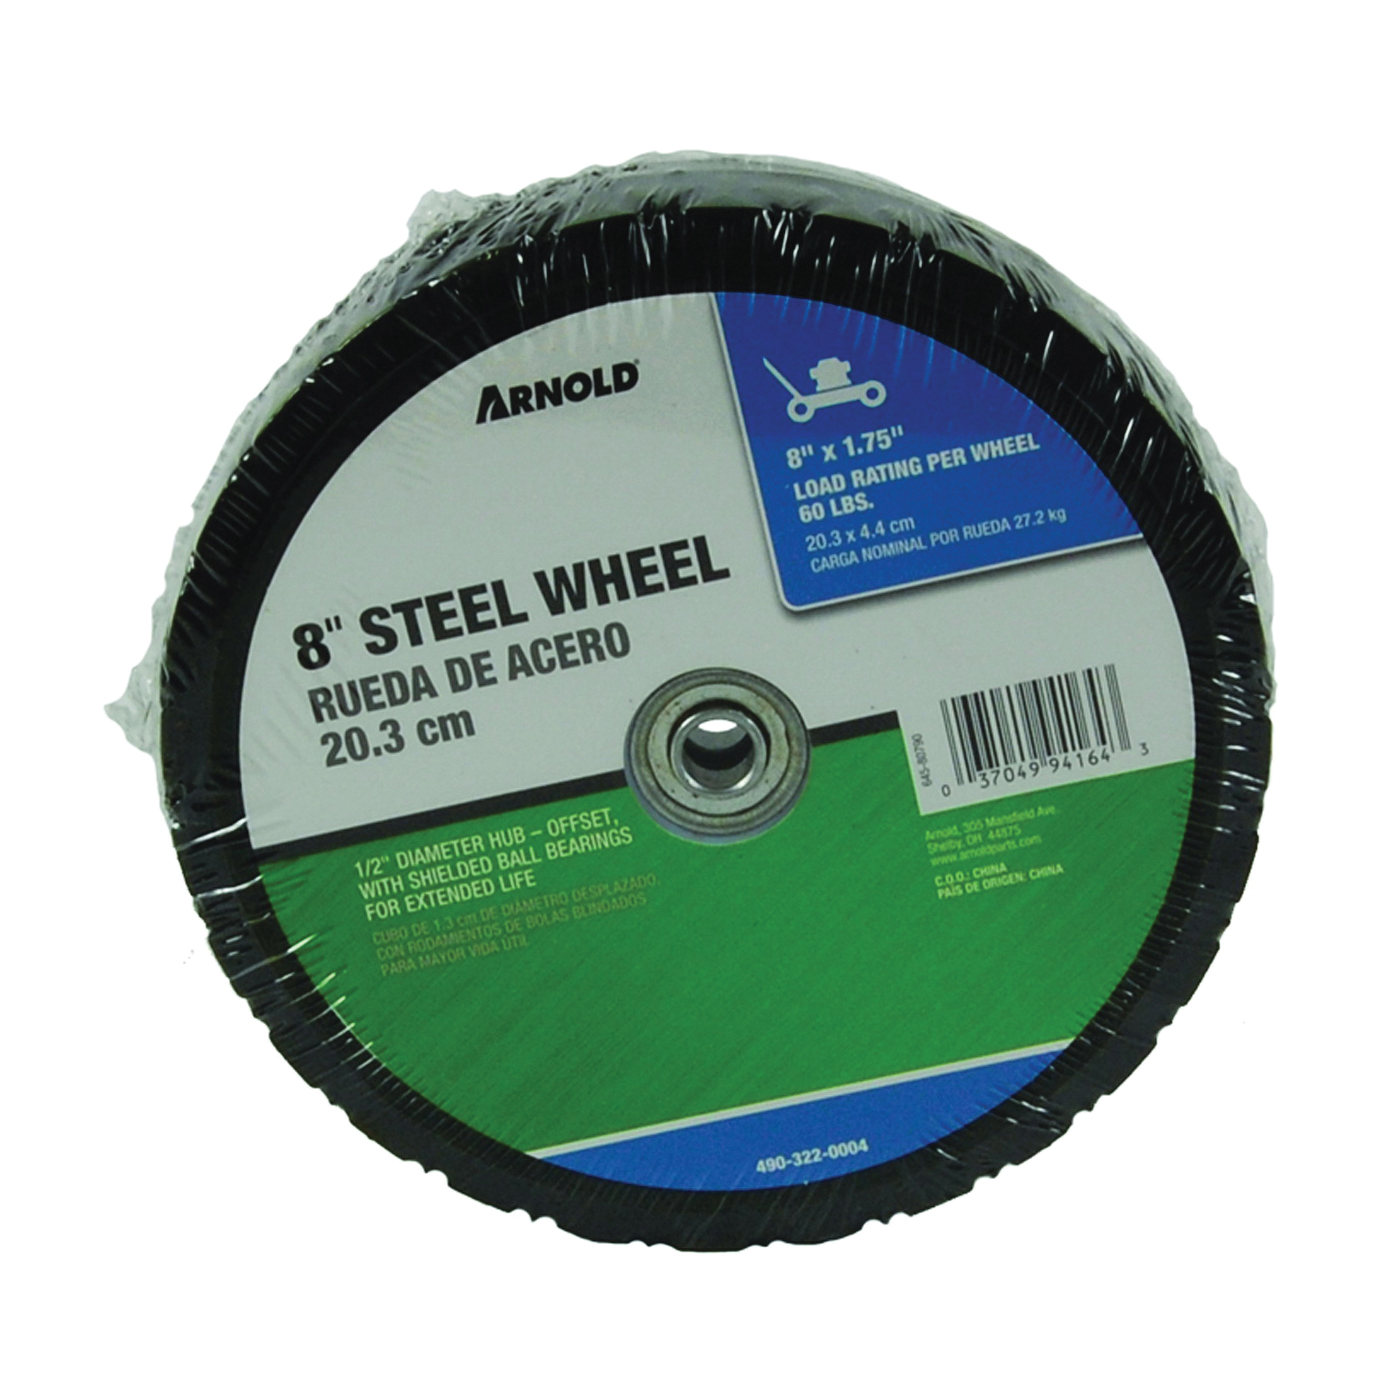 Picture of ARNOLD 490-322-0004 Tread Wheel, Steel, For: Lawnmowers